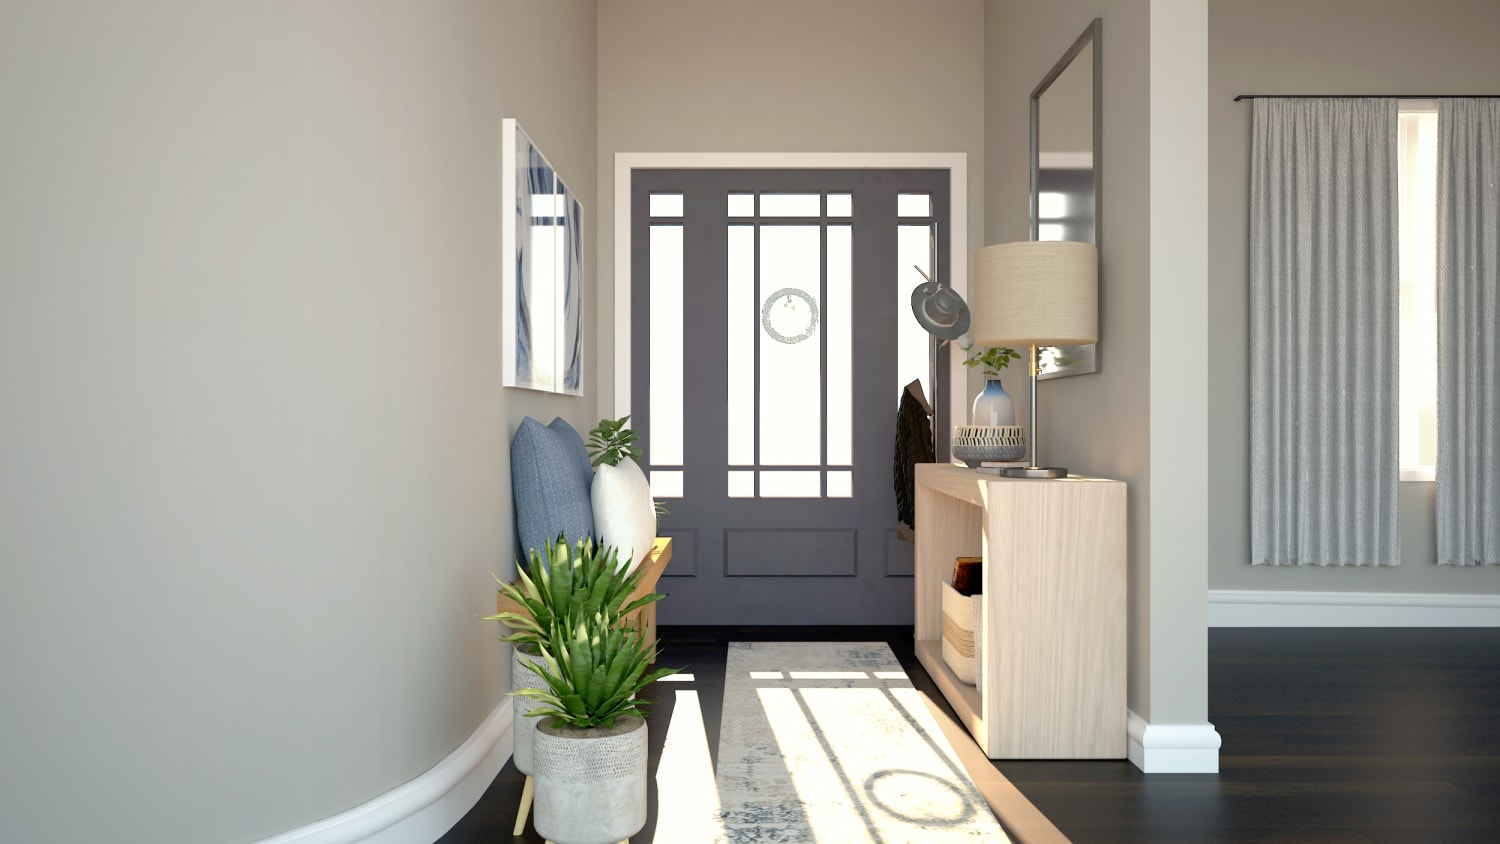 Inviting and Cozy: Modern Farmhouse Entryway Design By Spacejoy